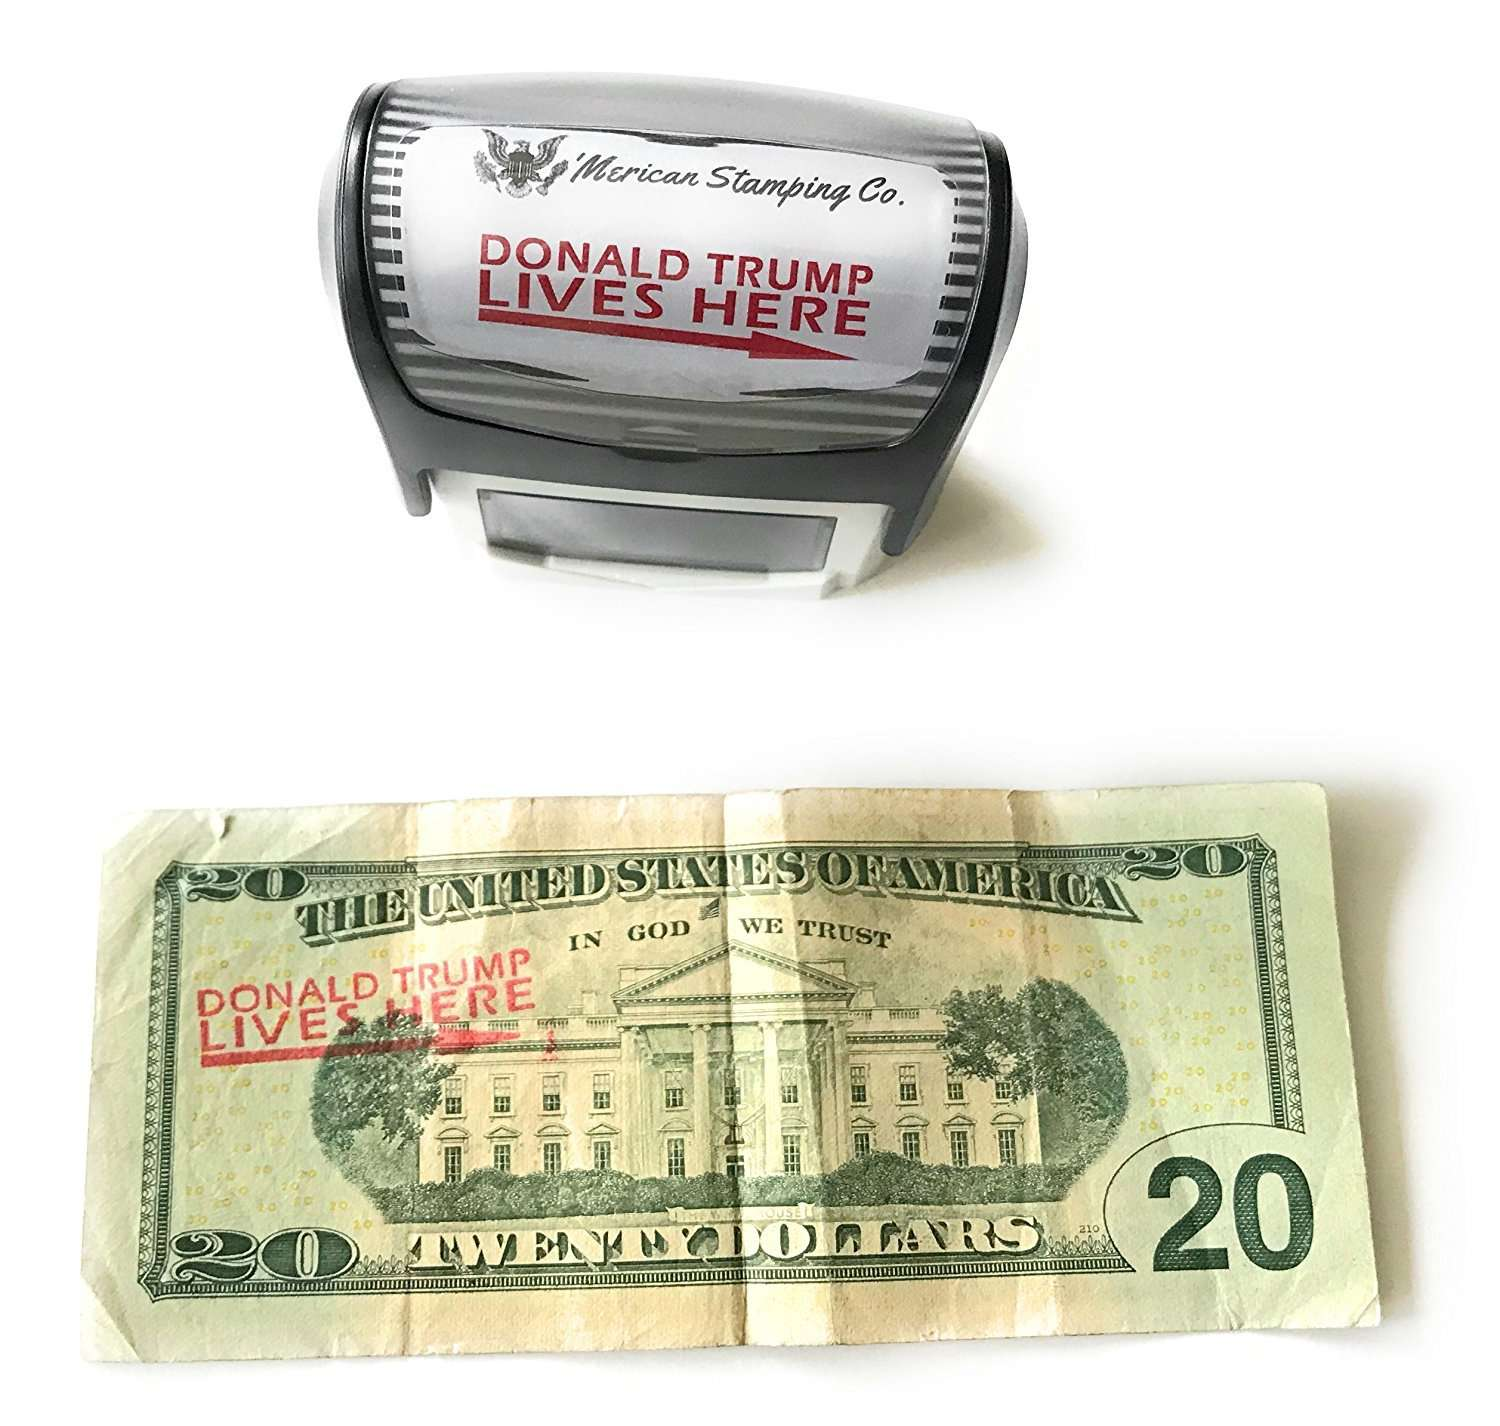 Donald Trump Lives Here Stamp, Self Inking Rubber Stamp, Red Ink [100% LEGAL!] - I Love My Freedom